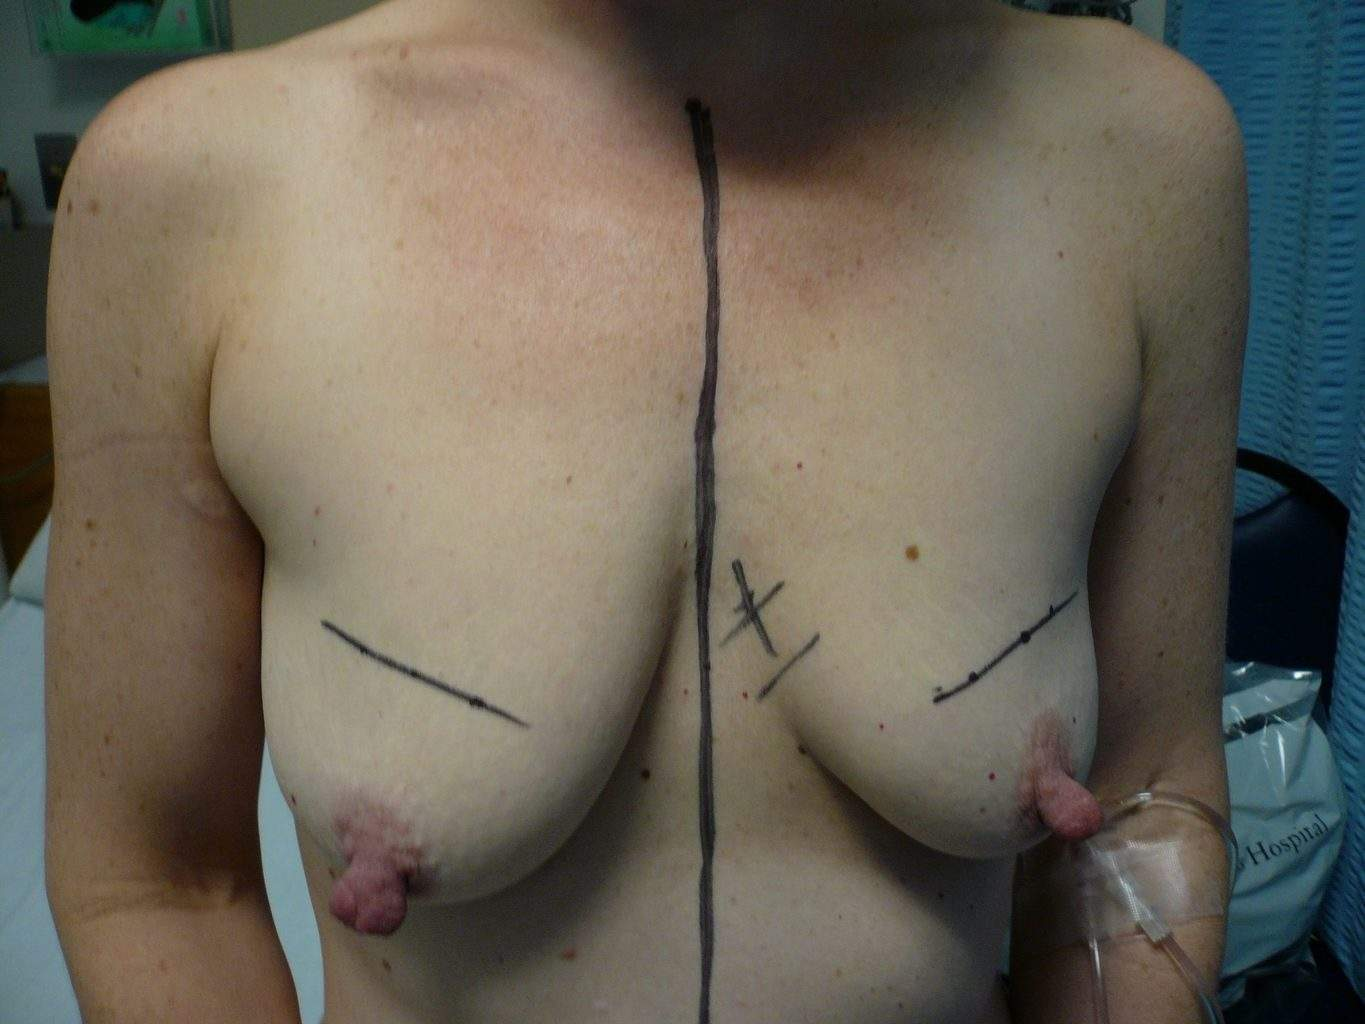 Picture of asymmetric breast with large nipples prior to Mastopexy breast lift surgery with augmentation mammoplasty